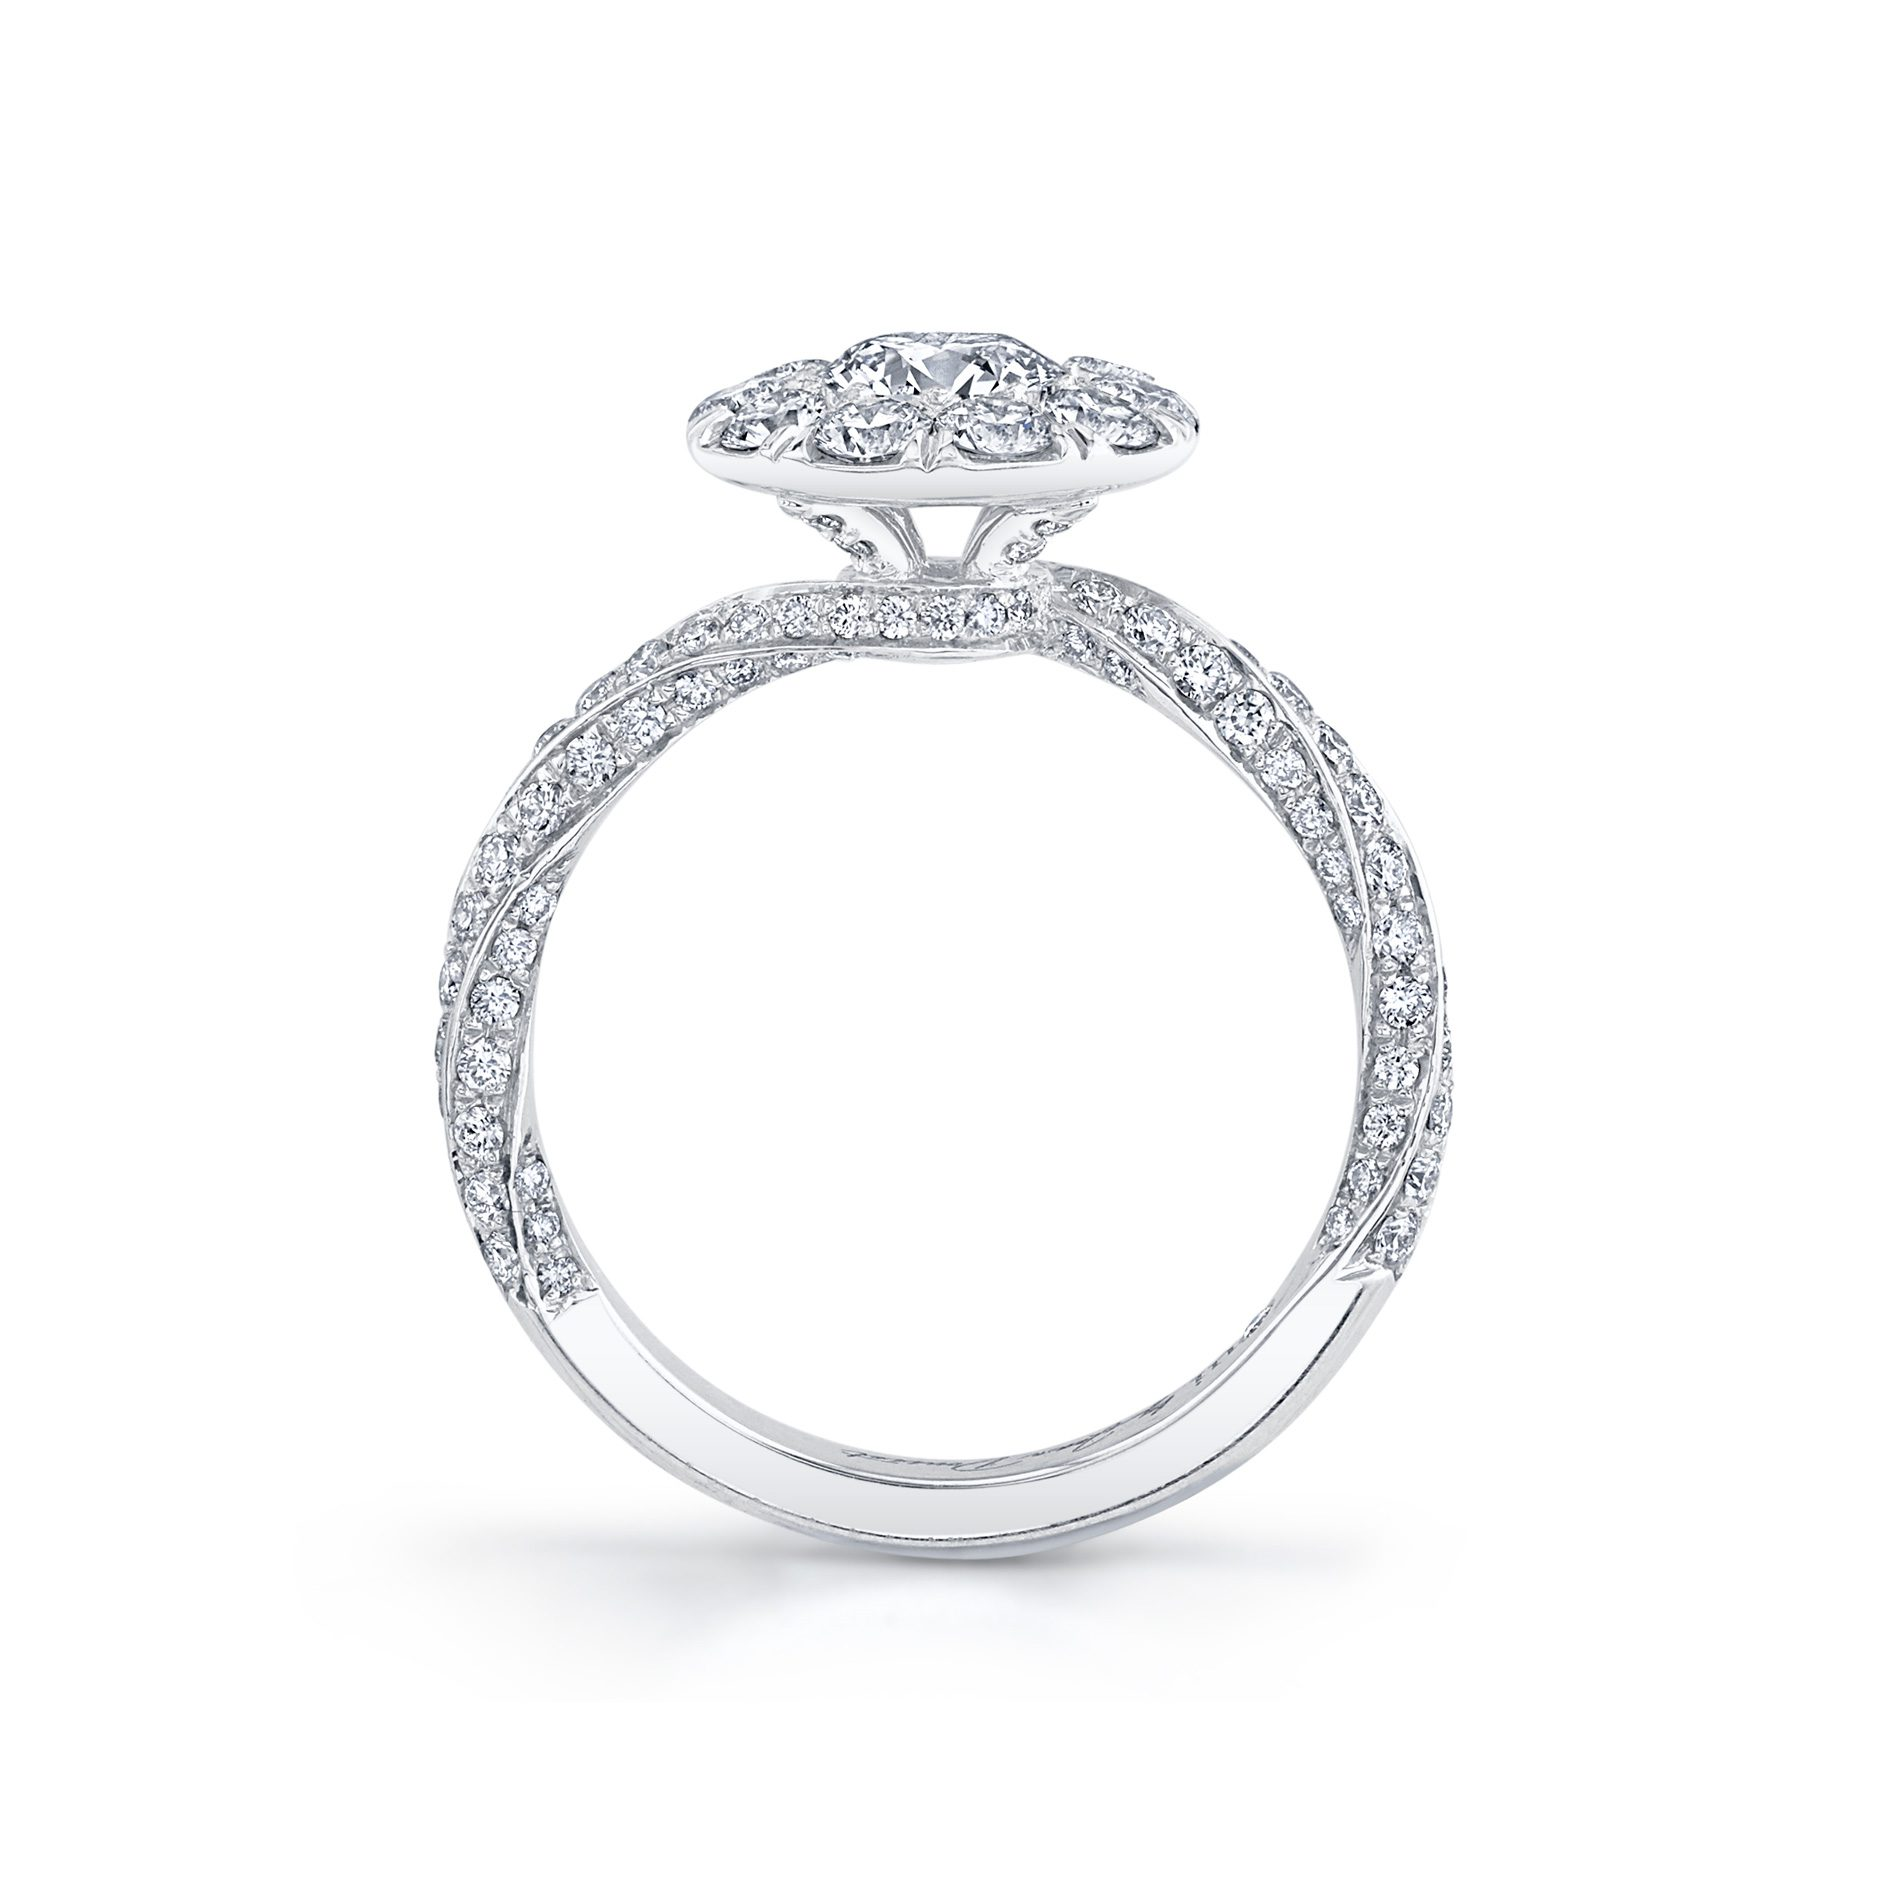 Camille Floating Round Brilliant Seamless Solitaire™ Engagement Ring with diamond pavé in 18k White Gold Standing View by Oui by Jean Dousset